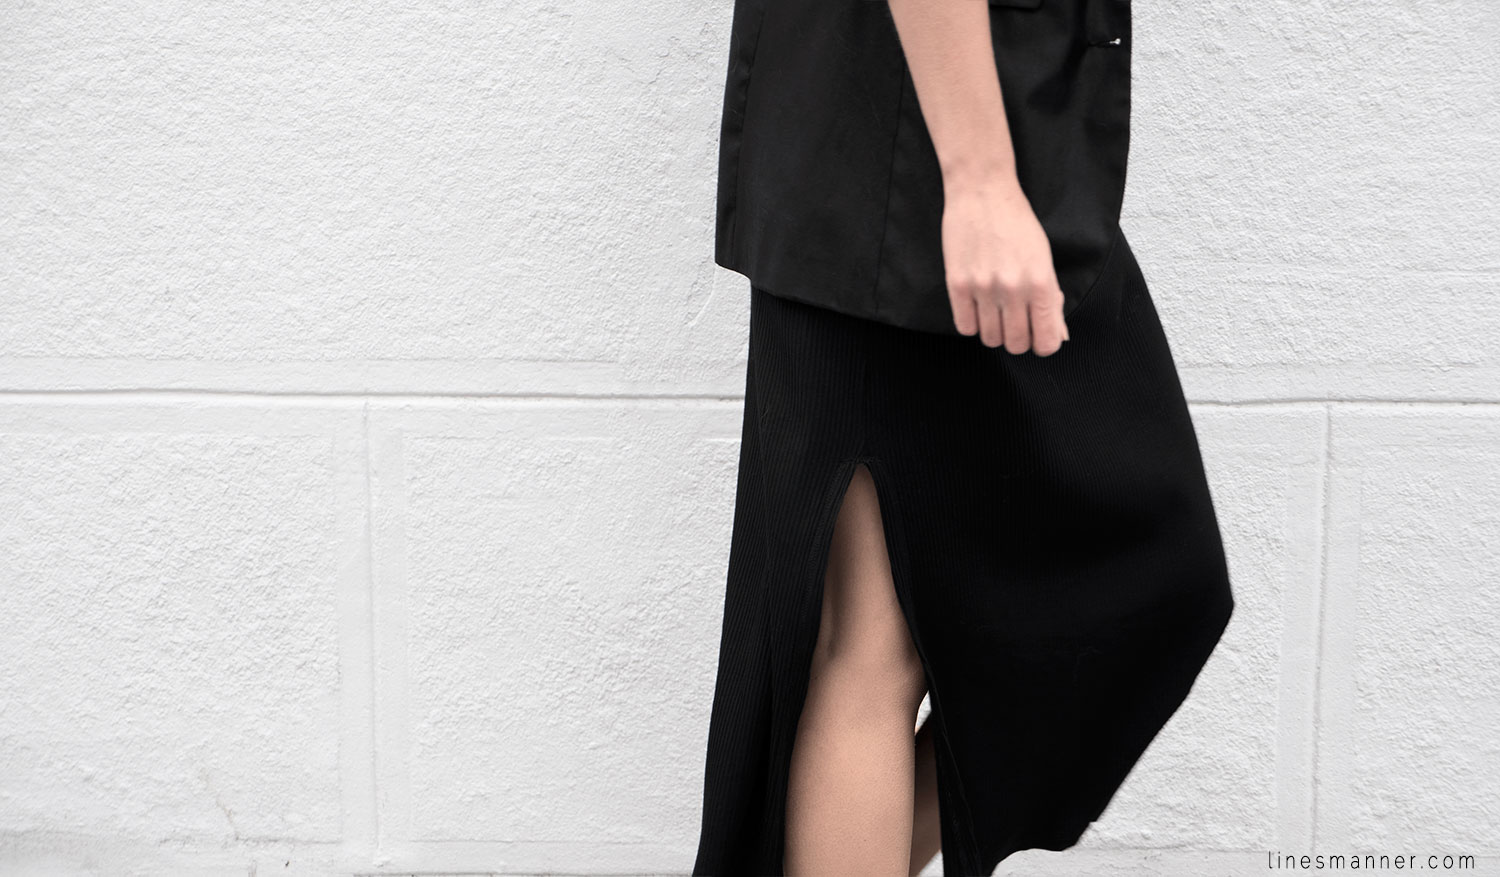 Lines-Manner-Black-Relaxed-Tone_on_Tone-Monochrome-Minimal-Sophistication-Comfort-Modern-Simplicity-Casual-Sporty_Luxe-Slit_Dress-Thrid_Form-Blazer-Essentials-Details-Basics-Timeless-Verstatile-Staple-Wardrobe-Sleek-Clean_Lines-All_Black_Everything-11